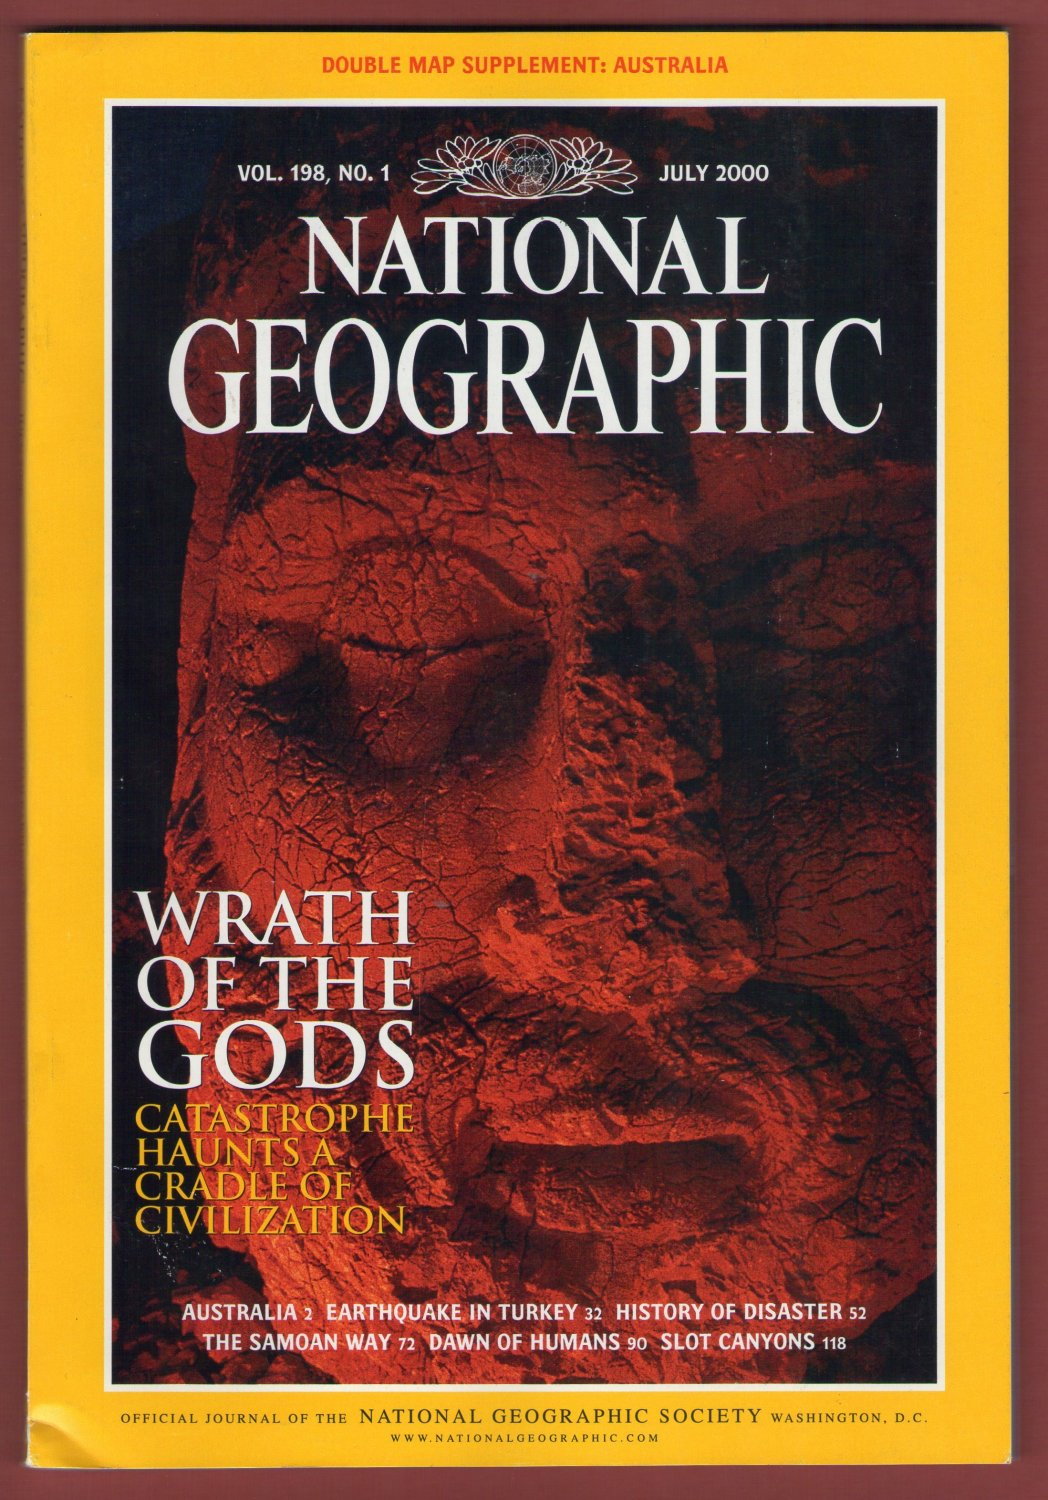 Vol. 198, No.1 July 2000 [!publisher:The National Geographic Society!] [!year:2000!]